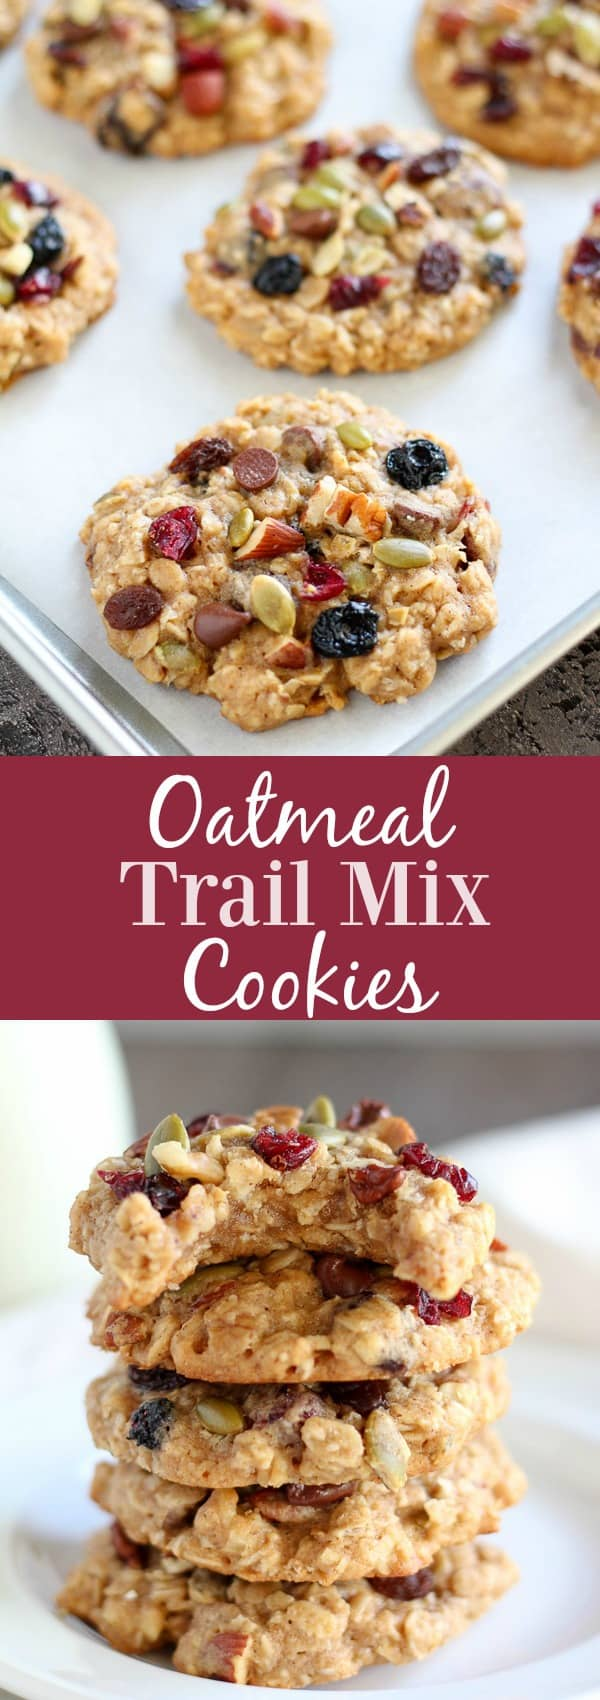 Oatmeal Trail Mix Cookies - Healthier oatmeal cookies that are soft and chewy, sweetened with honey, and filled with your favorite trail mix. A wholesome and delicious treat for lunchboxes, snacking, or dessert.